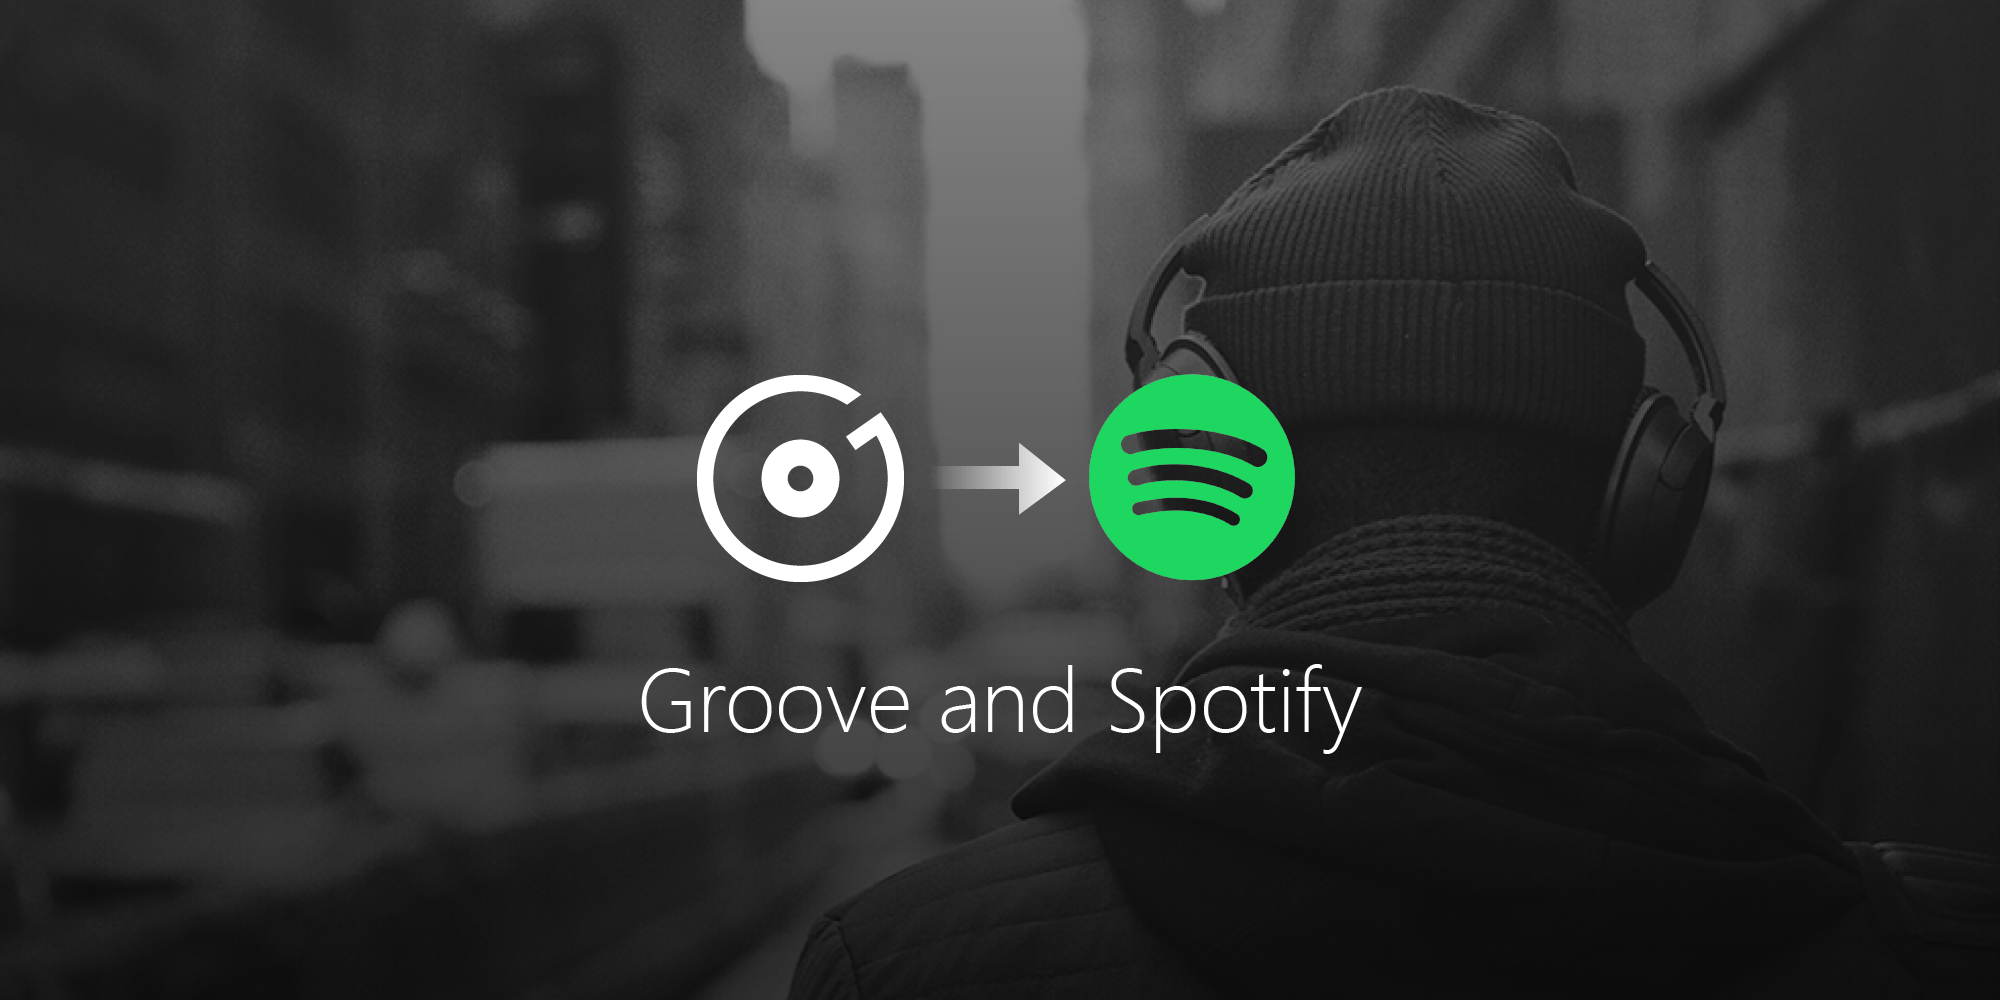 Microsoft enters streaming partnership with Spotify